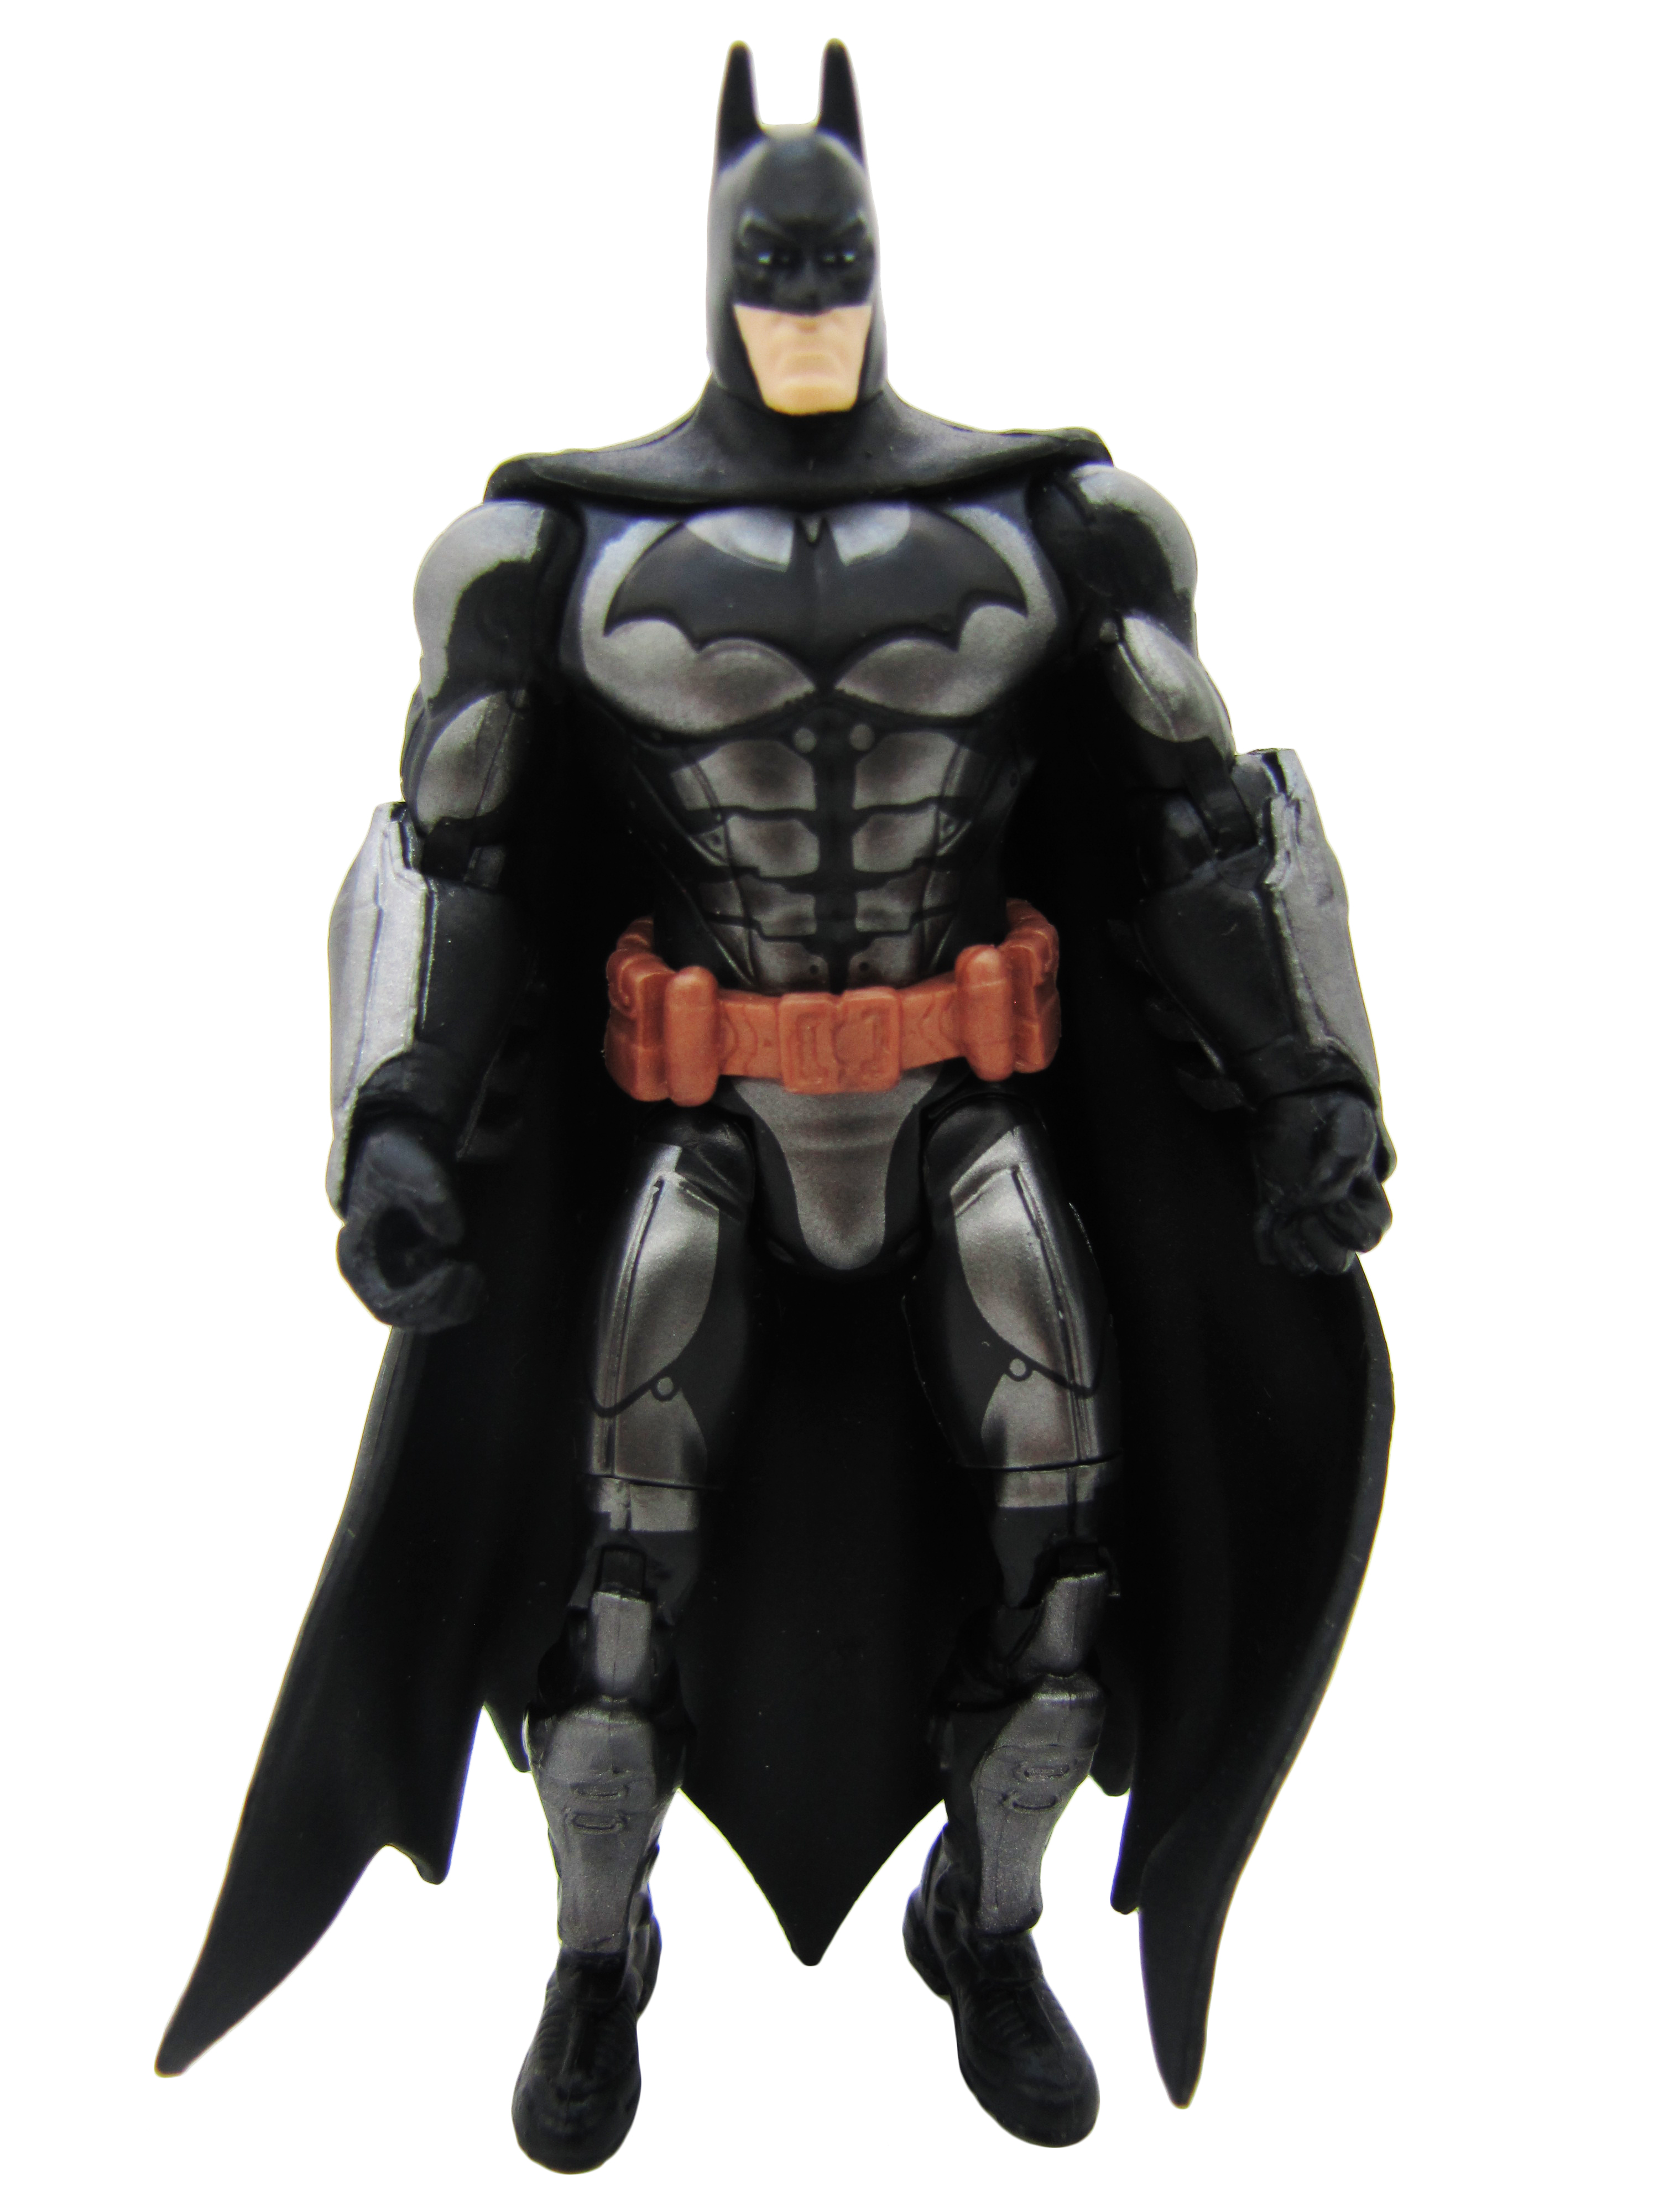 2013 Mattel DC Comics Multiverse Batman Arkham City BATMAN ARMORED BATSUIT